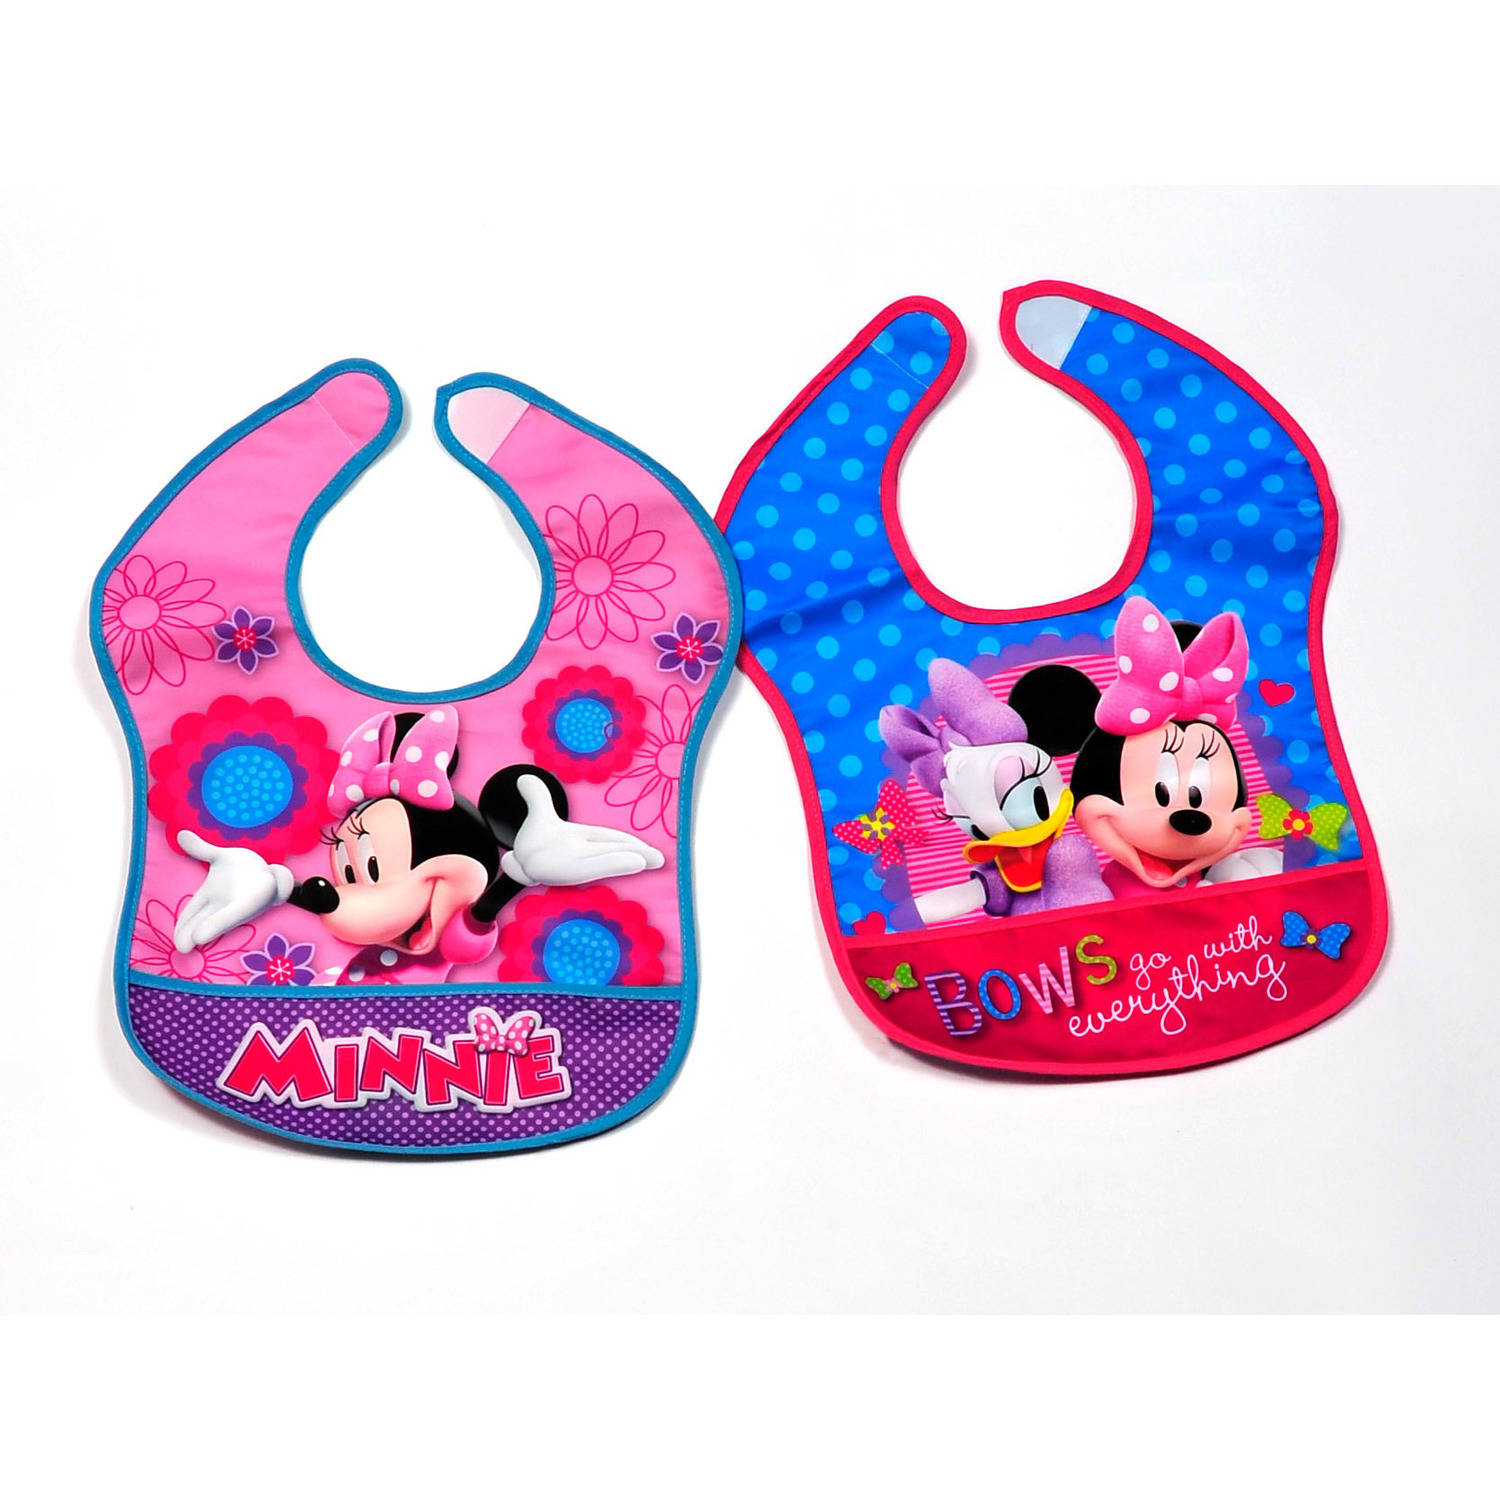 Disney Minnie Mouse Bibs Nylon, Pack of 2